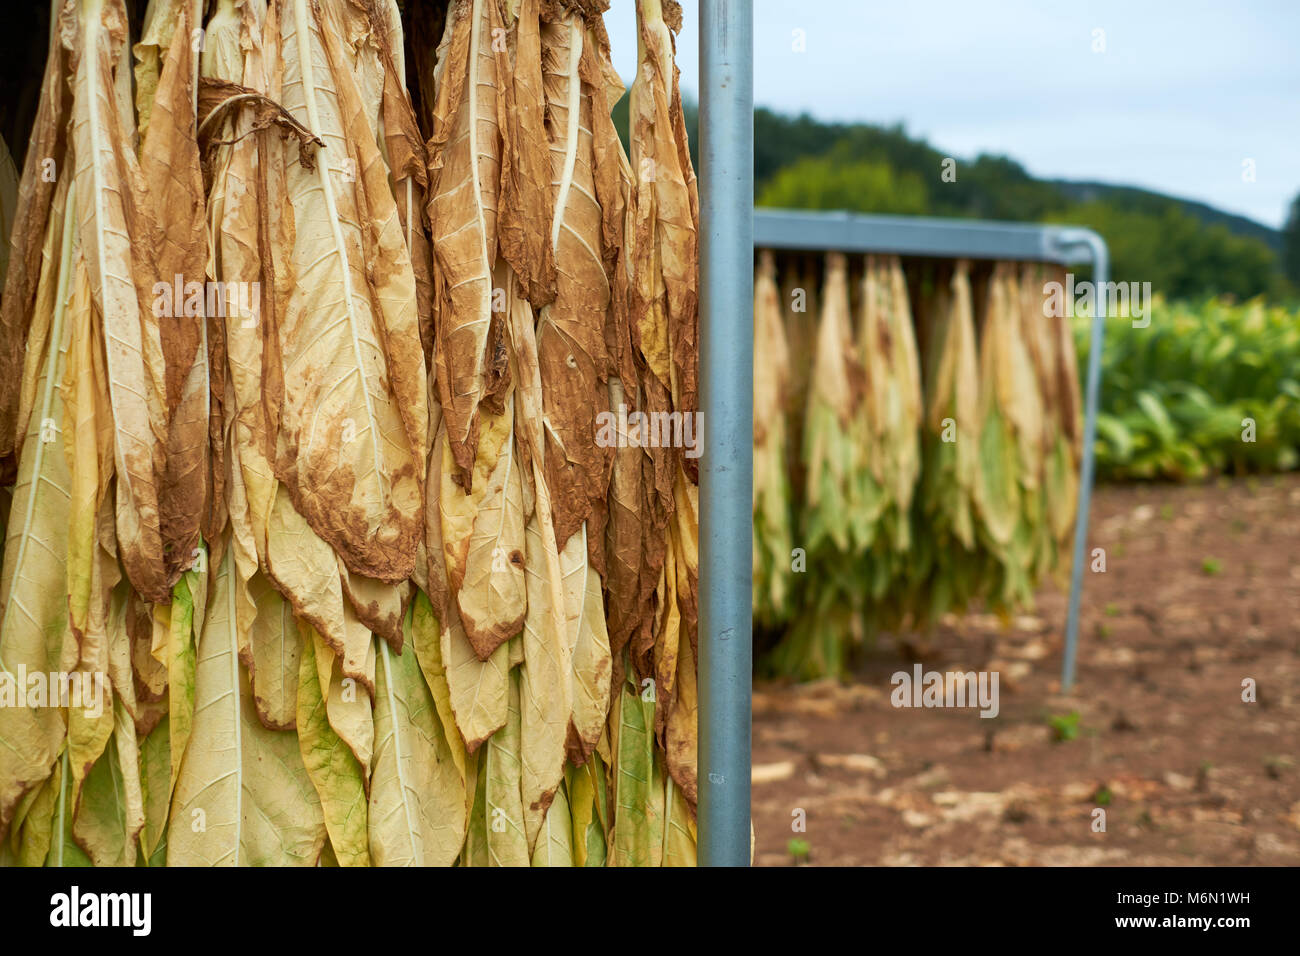 Tobacco leaves hanging out to dry - Stock Image